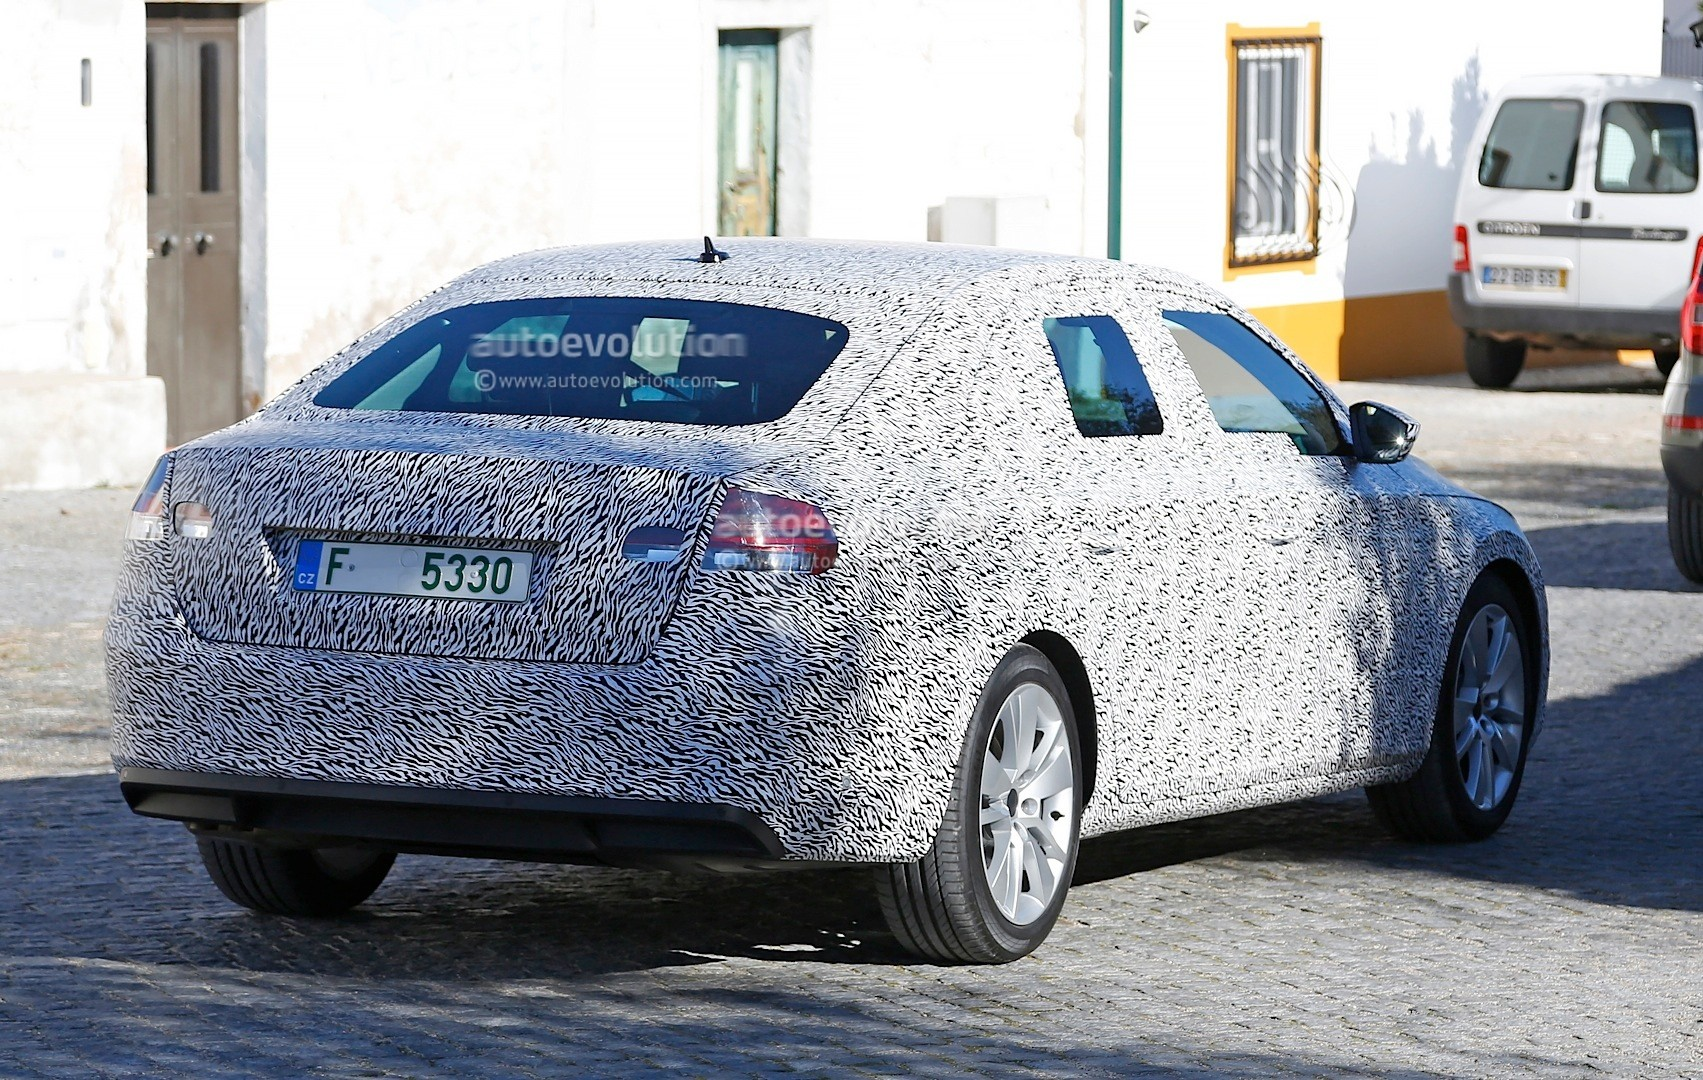 14 All New Spy Shots Skoda Superb Model